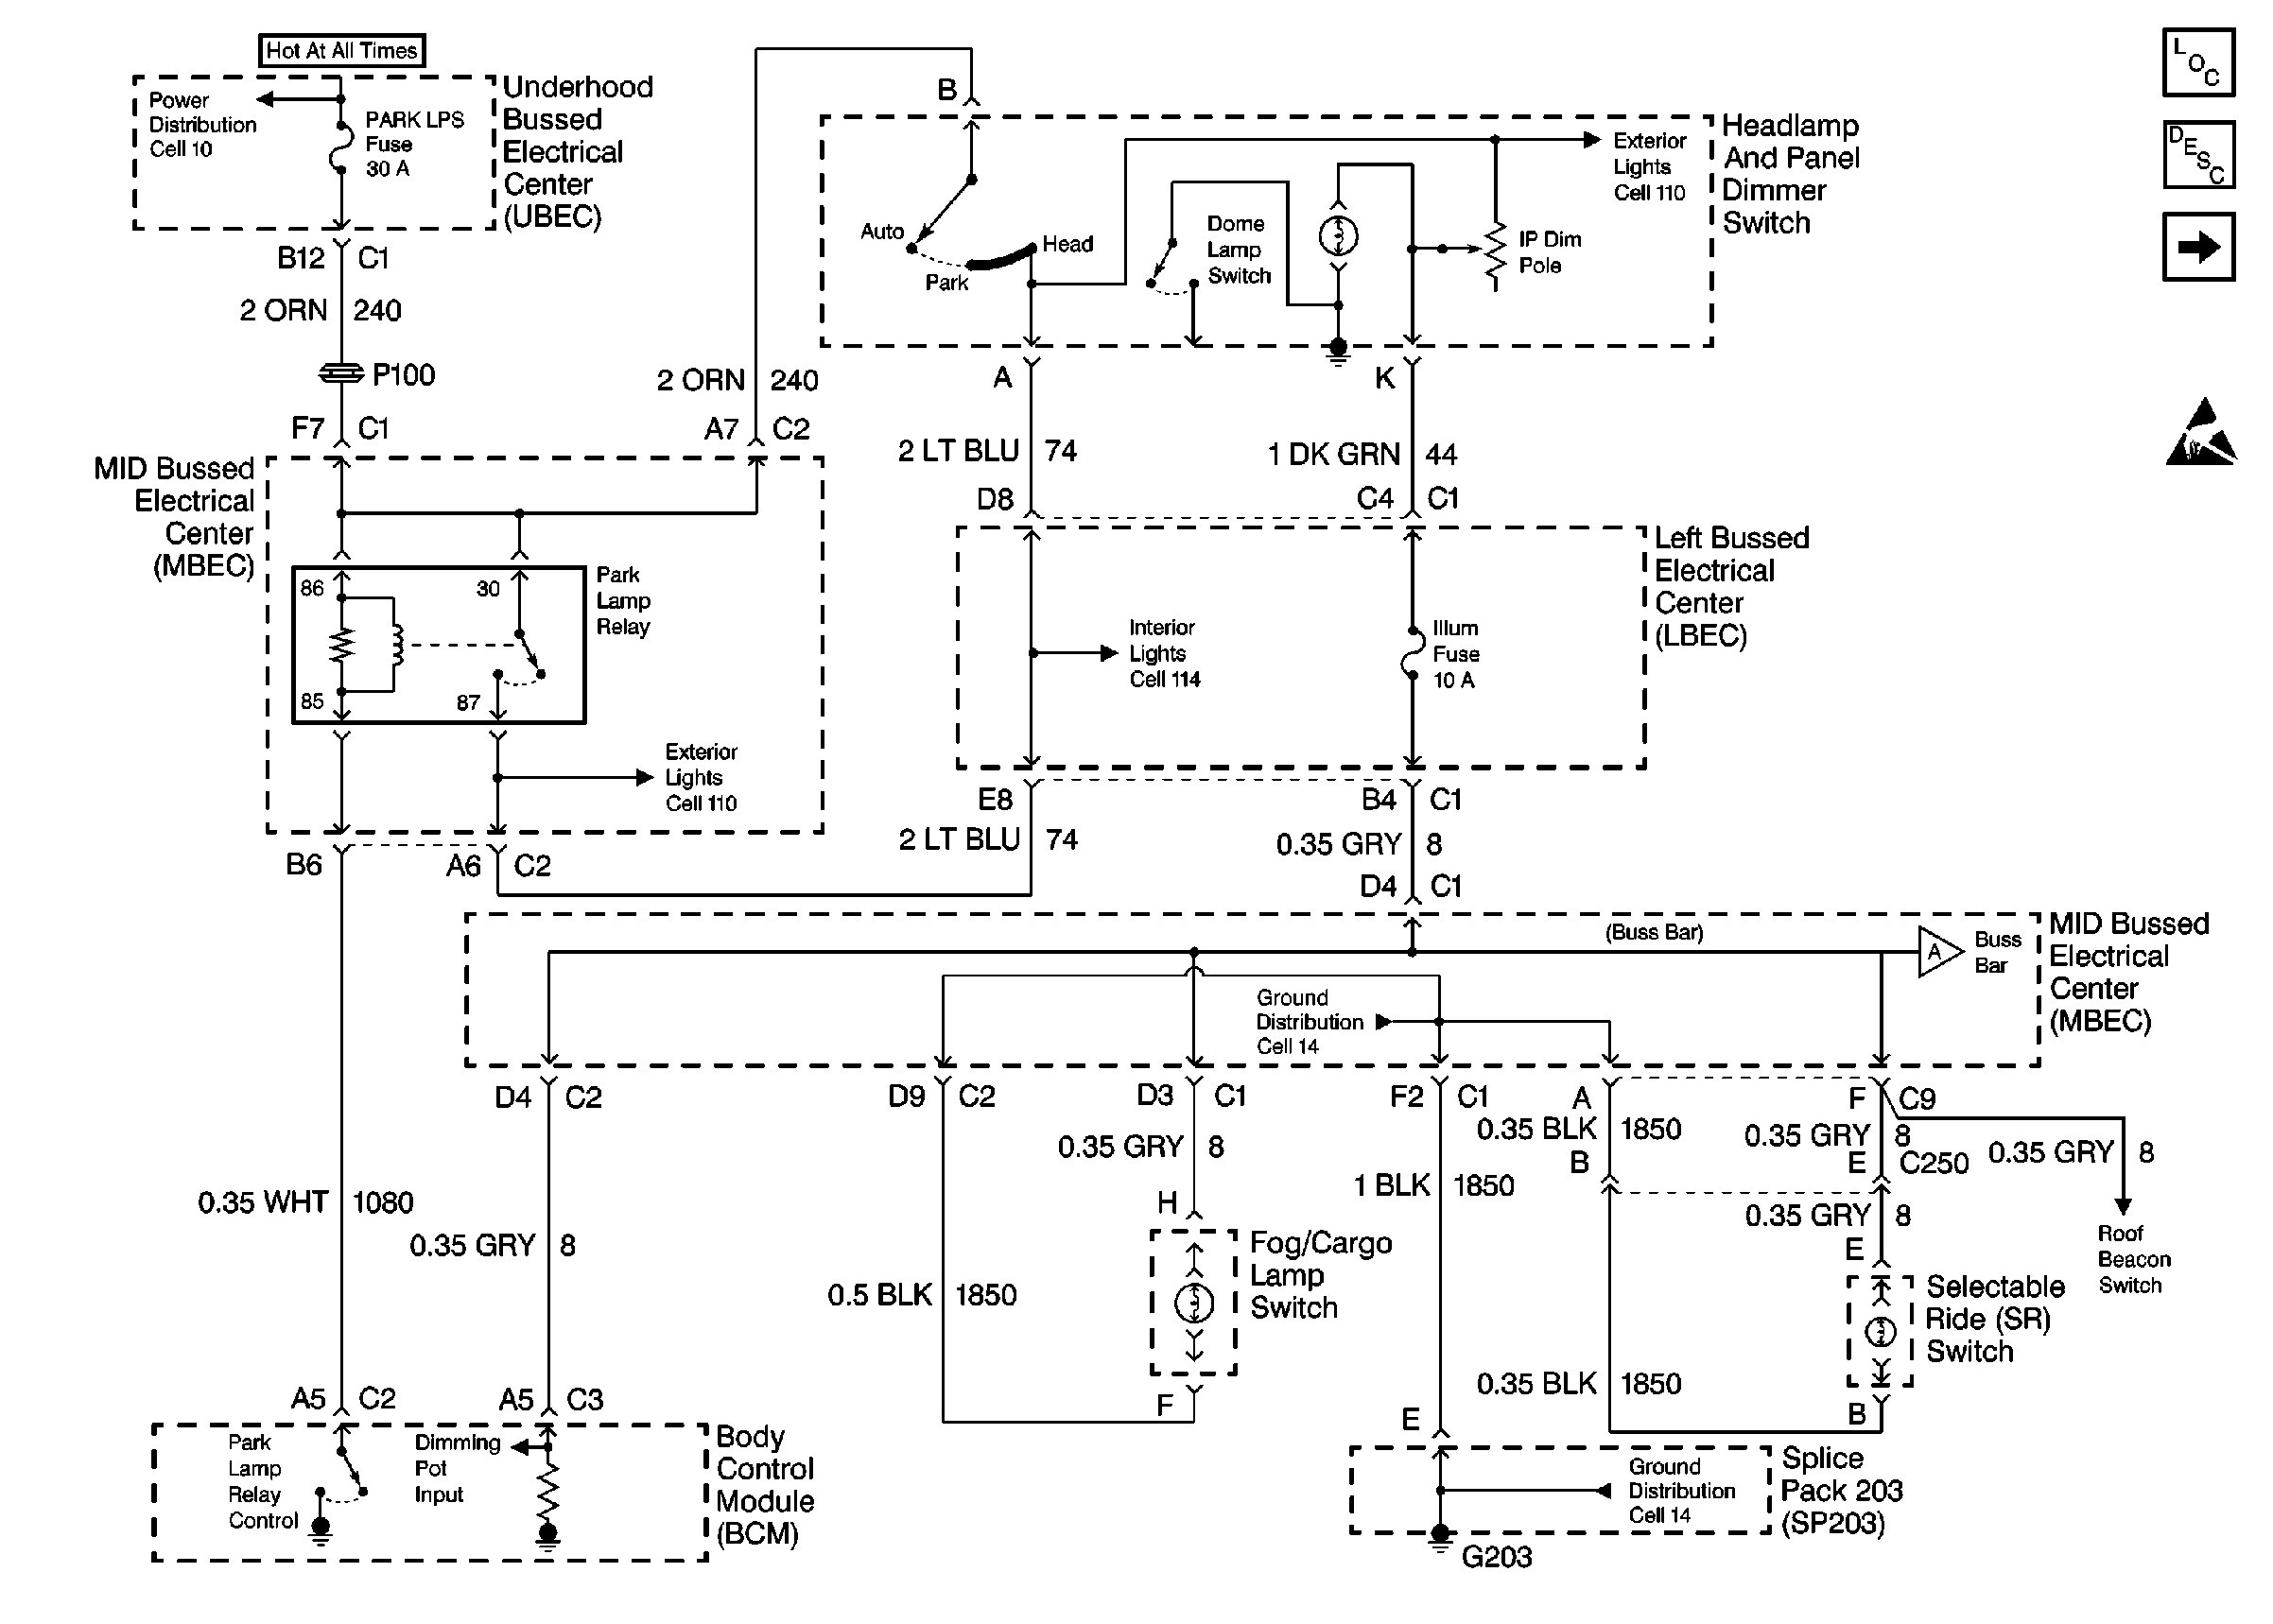 2004 chevy 2500hd trailer wiring diagram Download-Yukon Trailer Wiring Diagram New 2004 Chevy Silverado Wiring Diagram originalstylophone 14-m